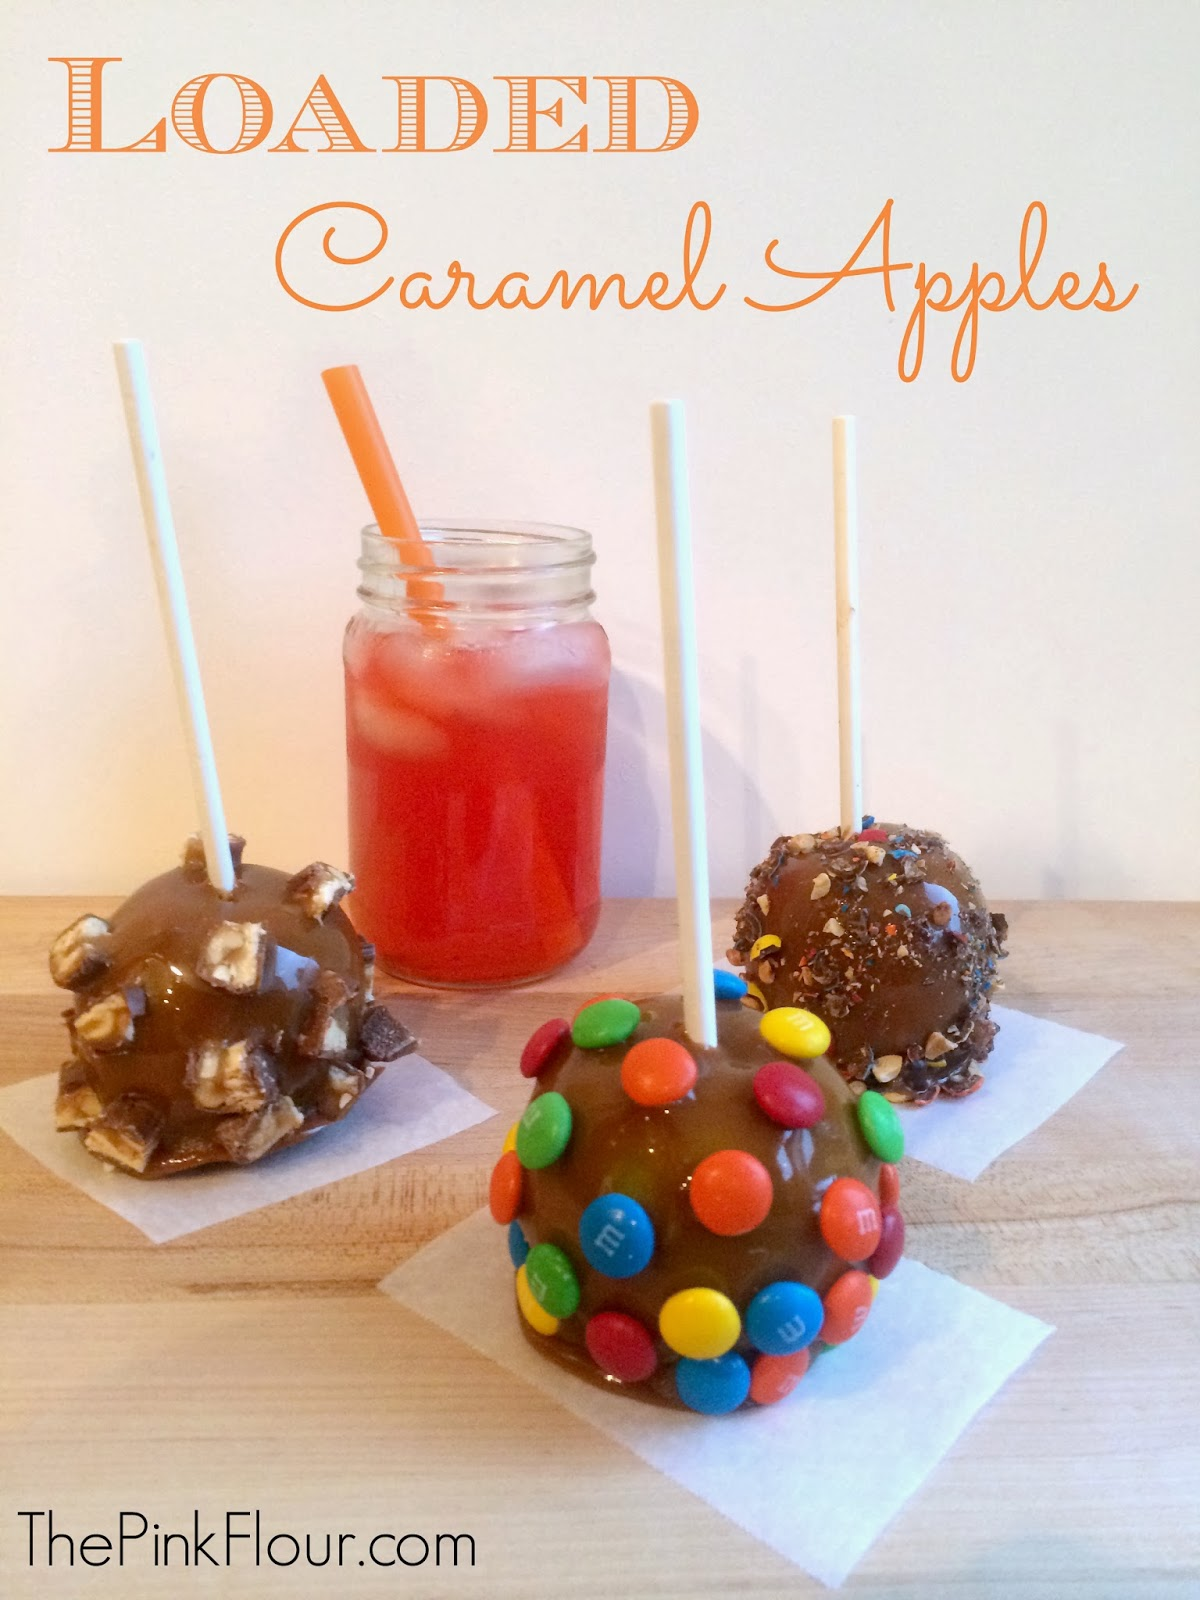 Loaded Caramel Apples - easy Halloween caramel apples topped with M&M's, Twix & Snickers from www.thepinkflour.com #shop